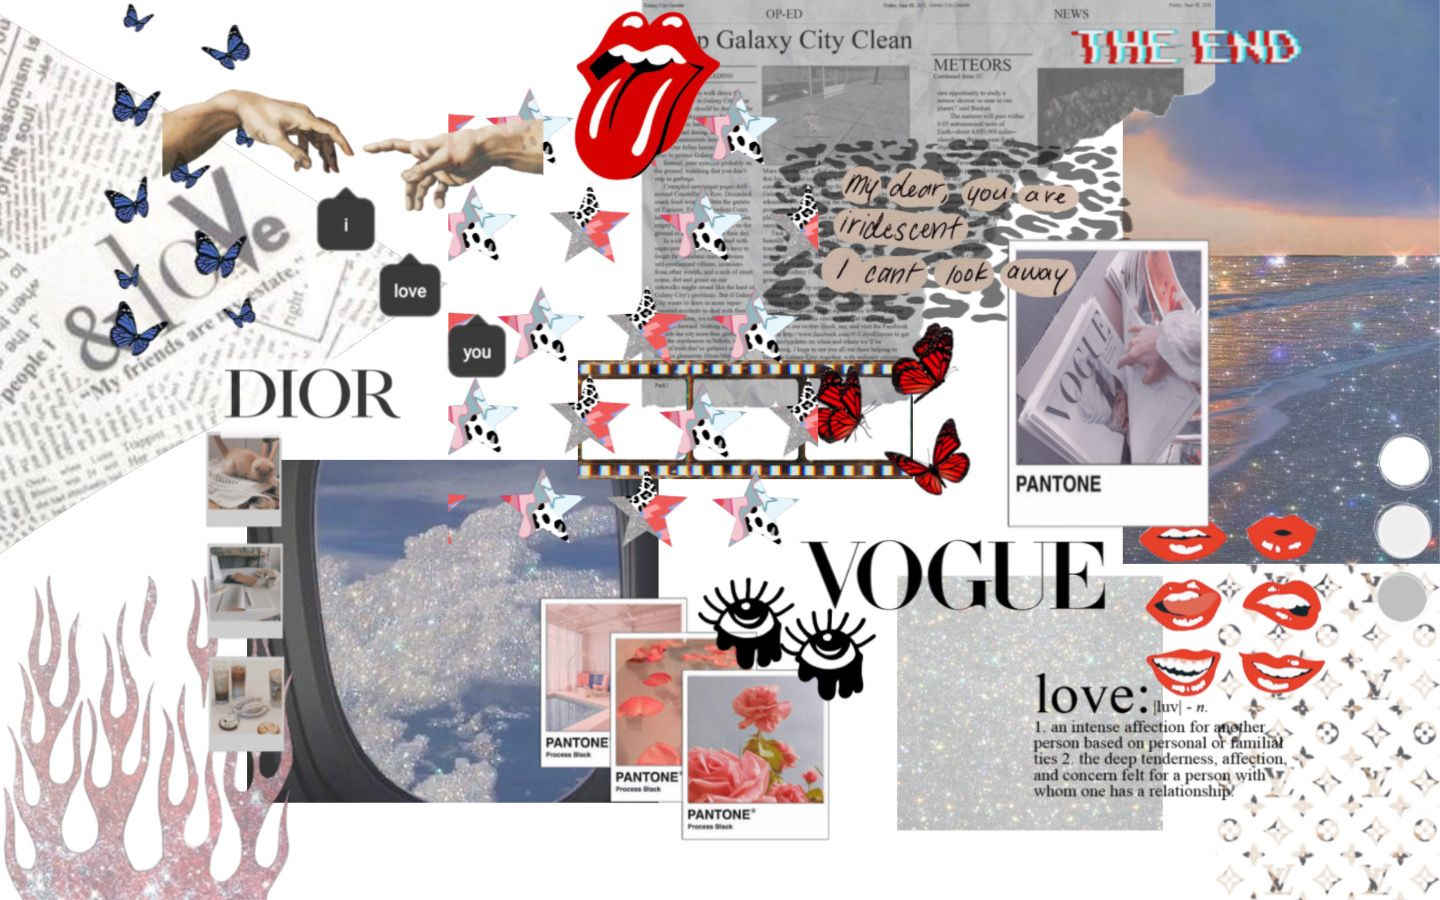 Fashion Collage Macbook Wallpaper In 2020 Macbook Wallpaper Aesthetic Desktop Wallpaper Laptop Wallpaper